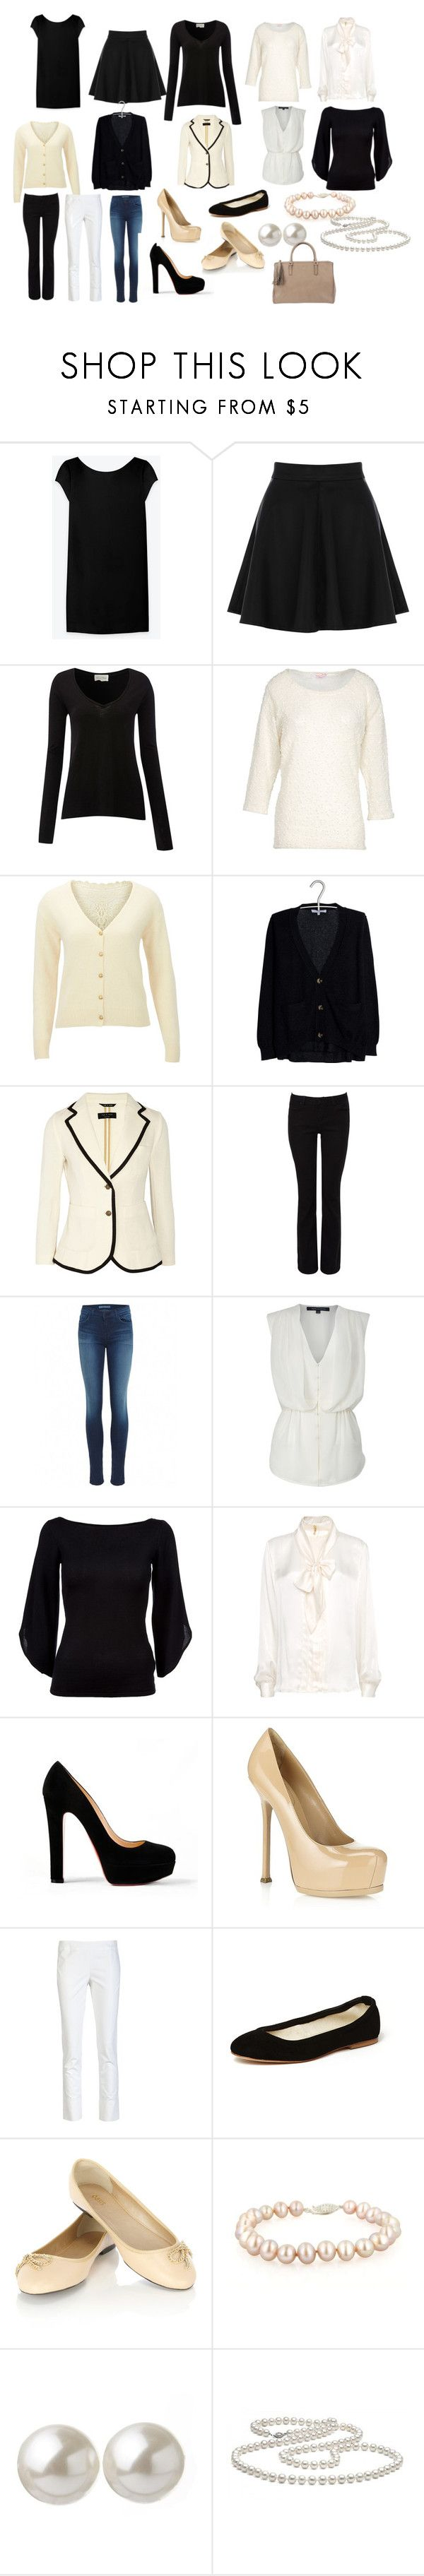 the french capsule wardrobe by tullewhimsy on Polyvore featuring Yves Saint Laurent, LARA, Ralph Lauren Black Label, American Vintage, Sandro, SELECTED, MANGO, French Connection, rag & bone and Oasis